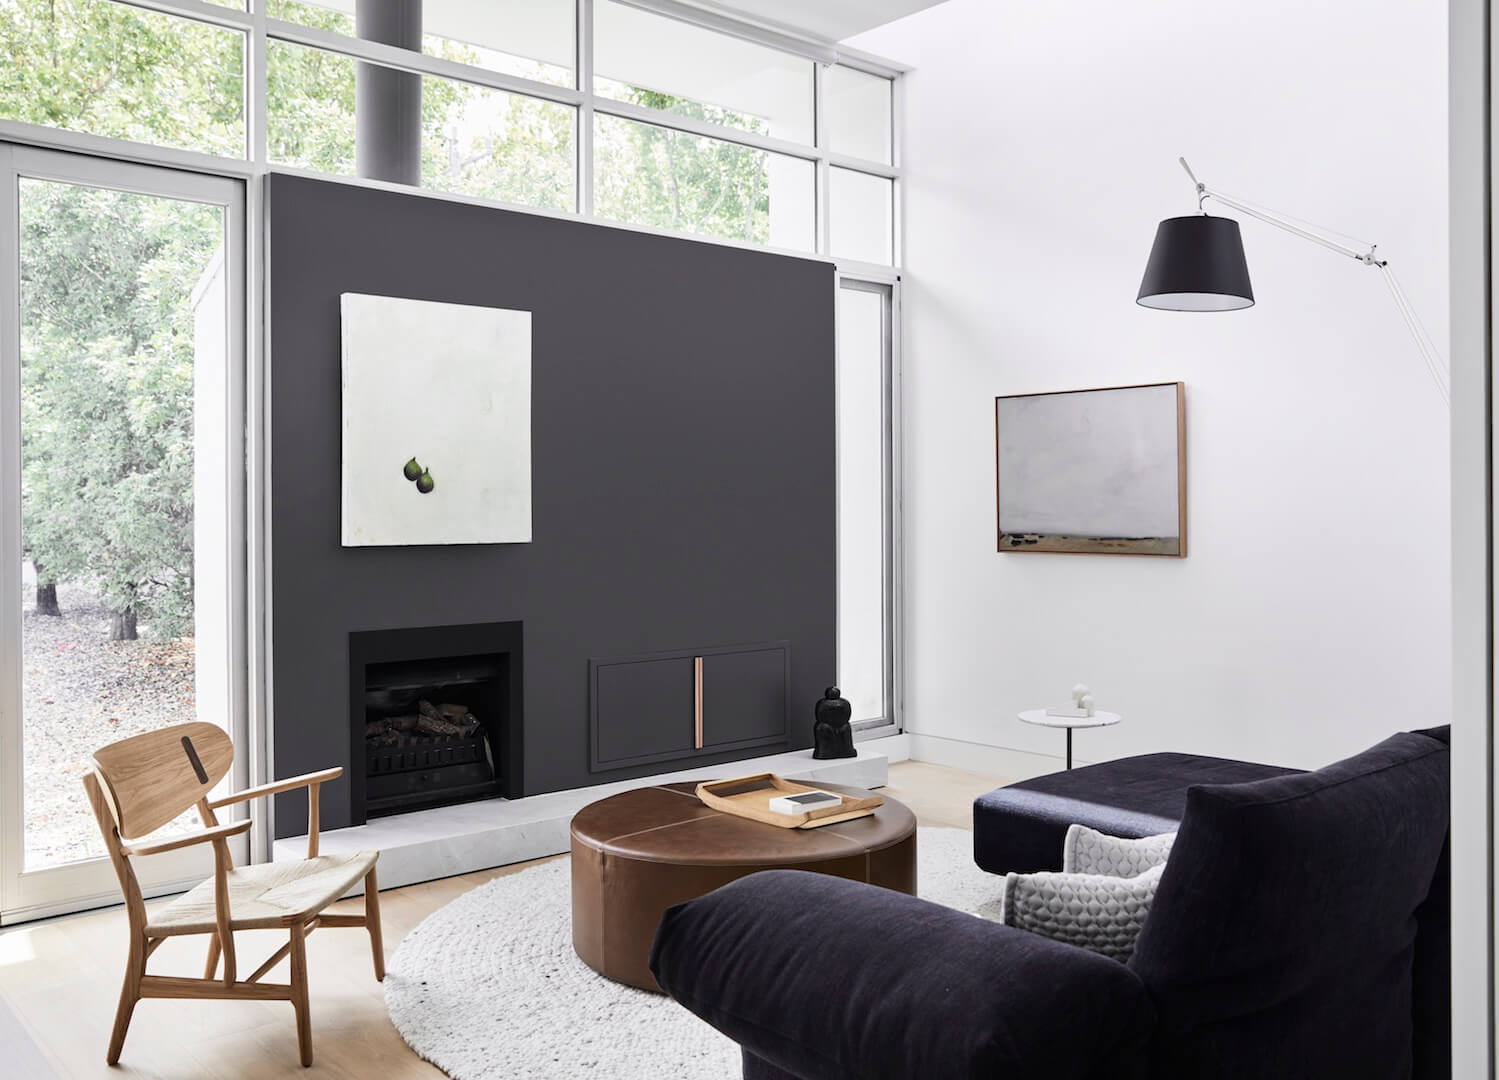 For Carole Whiting Interiors + Design, whose work often sits in the liminal space between whimsy and minimalism, this home in Melbourne's South-East suburb of Glen Iris presented a chance to demonstrate the studio's prowess in striking this studied balance. -